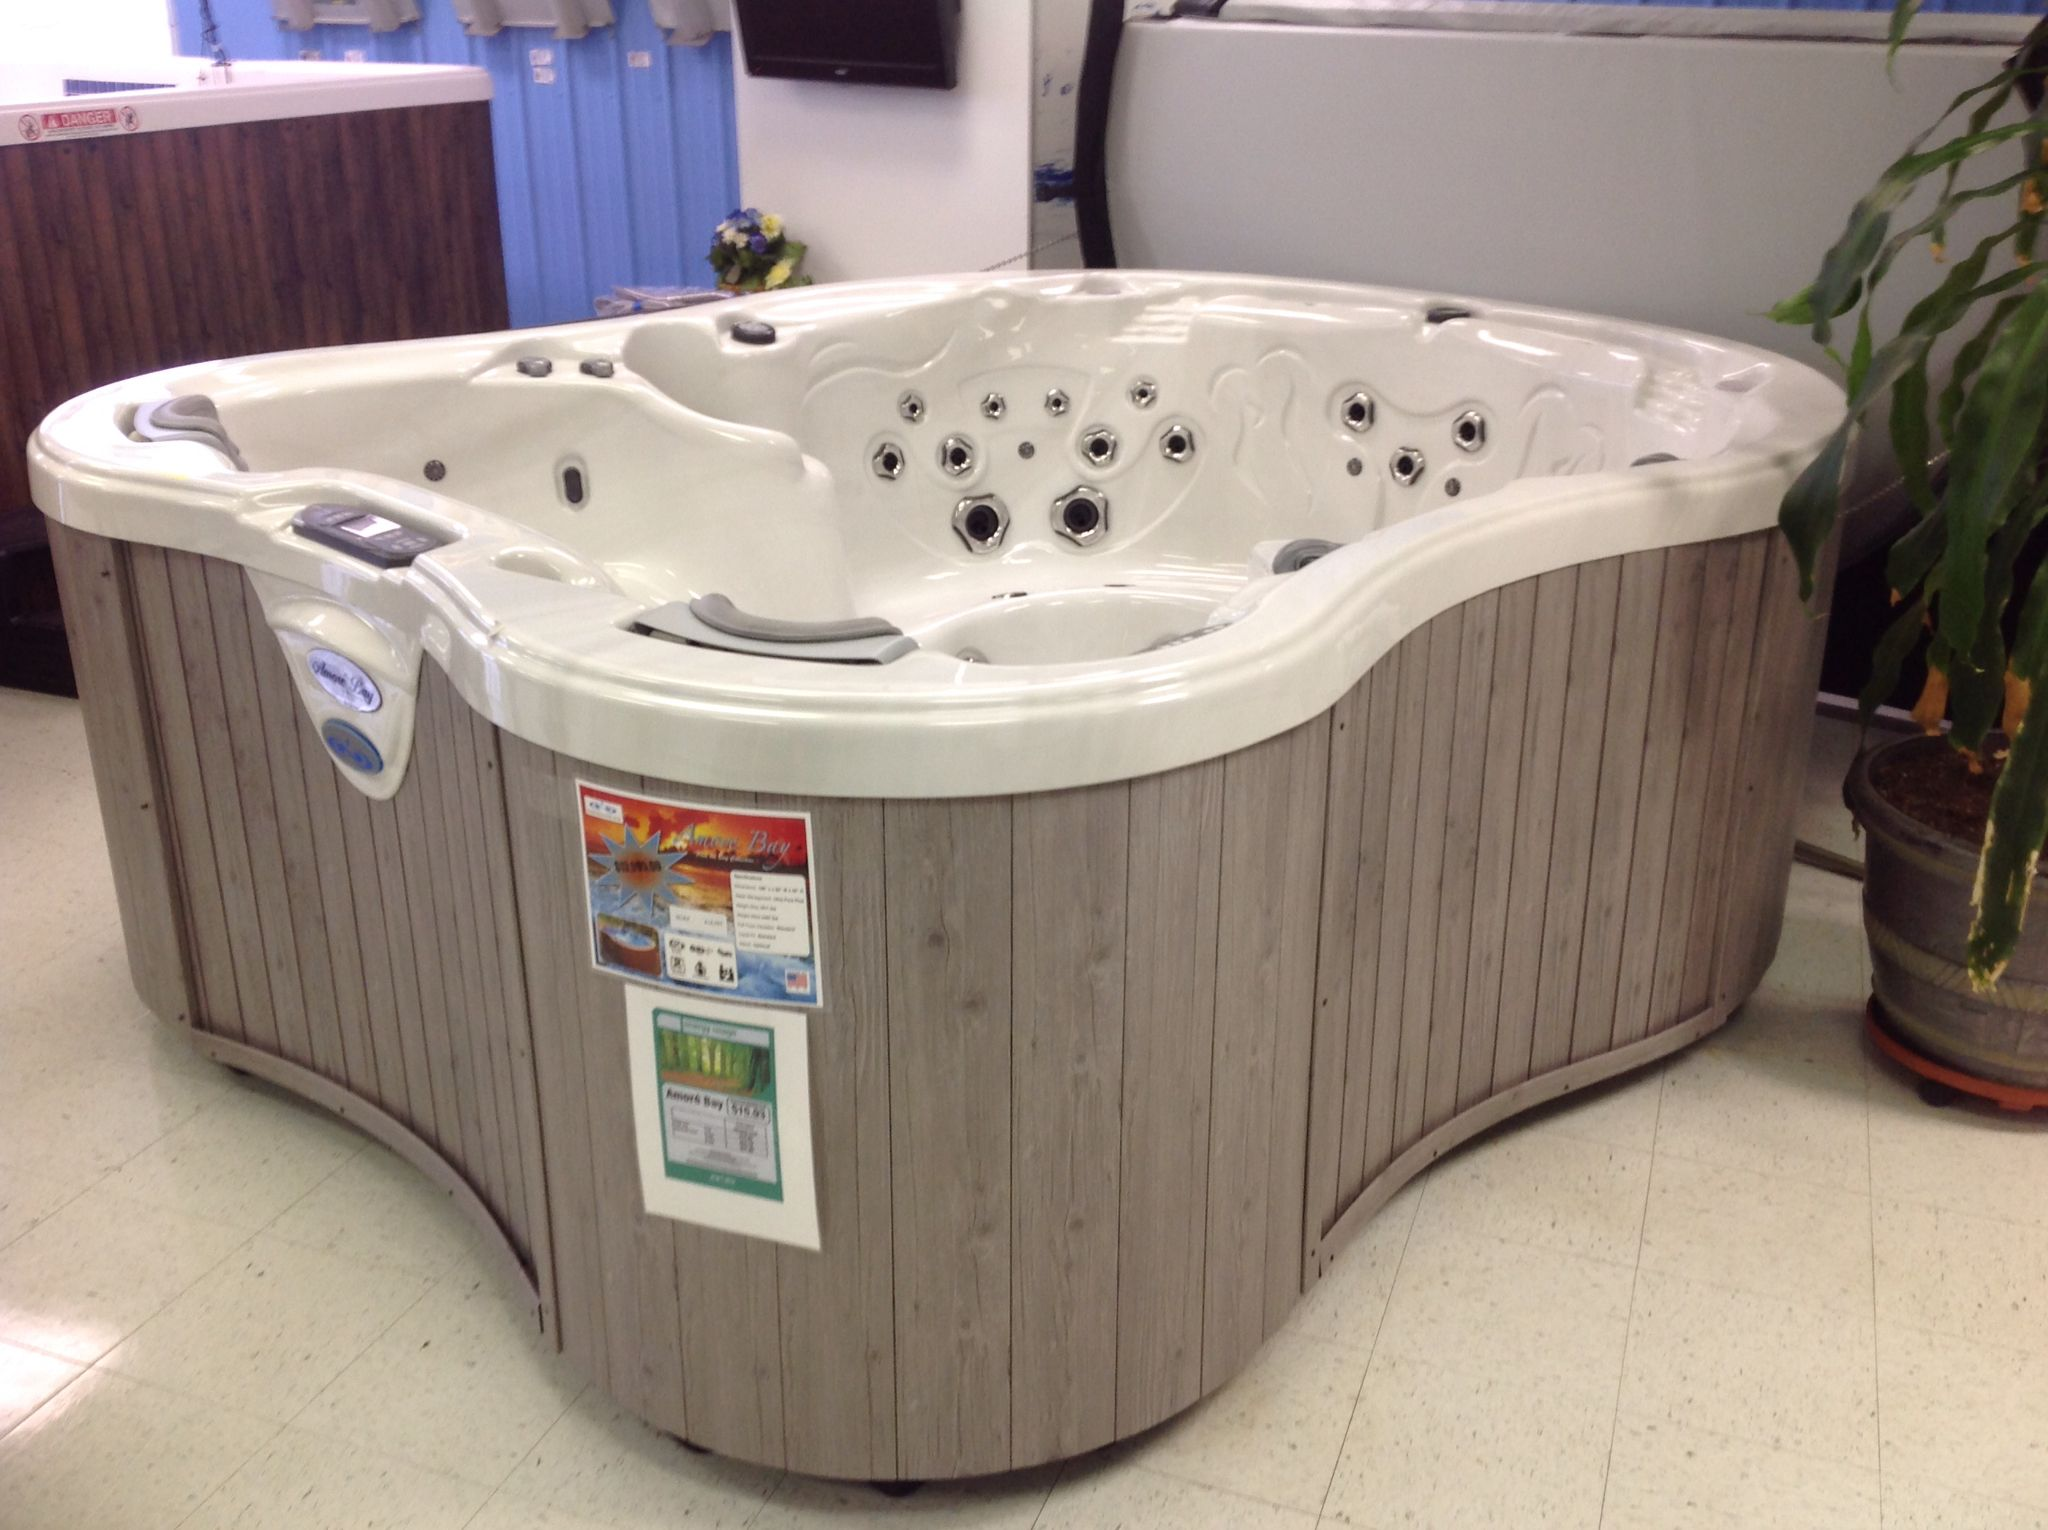 Jacuzzi Pool Dimensions Dimension One Amore Bay Showroom Spas Jacuzzi Bathtub